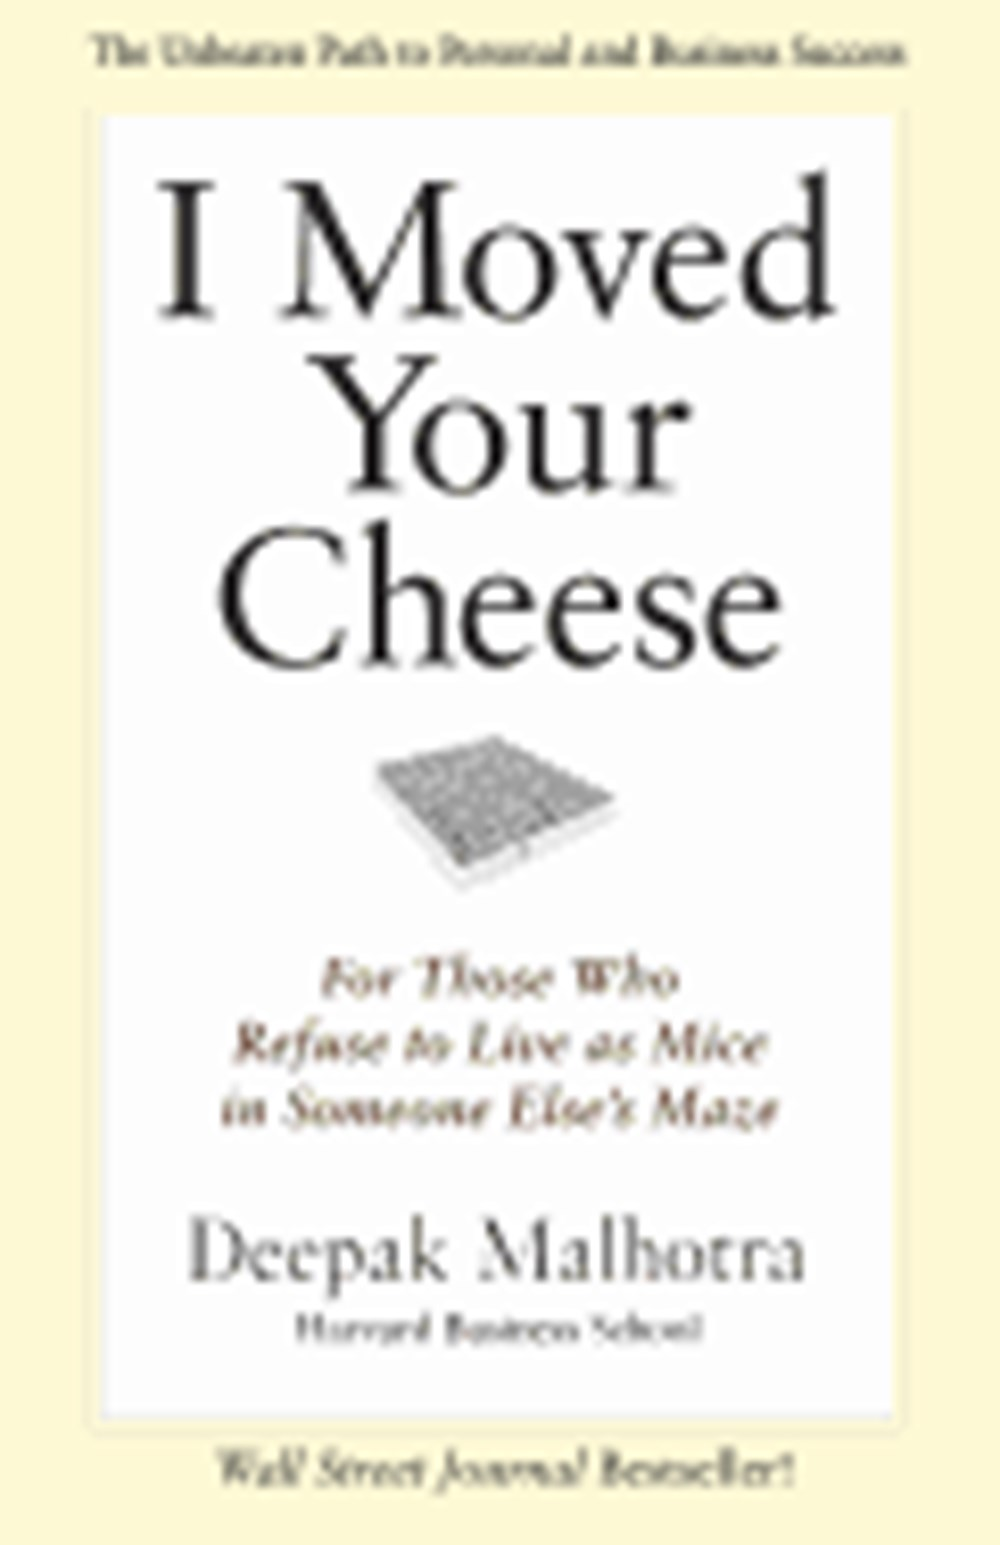 I Moved Your Cheese For Those Who Refuse to Live as Mice in Someone Else's Maze